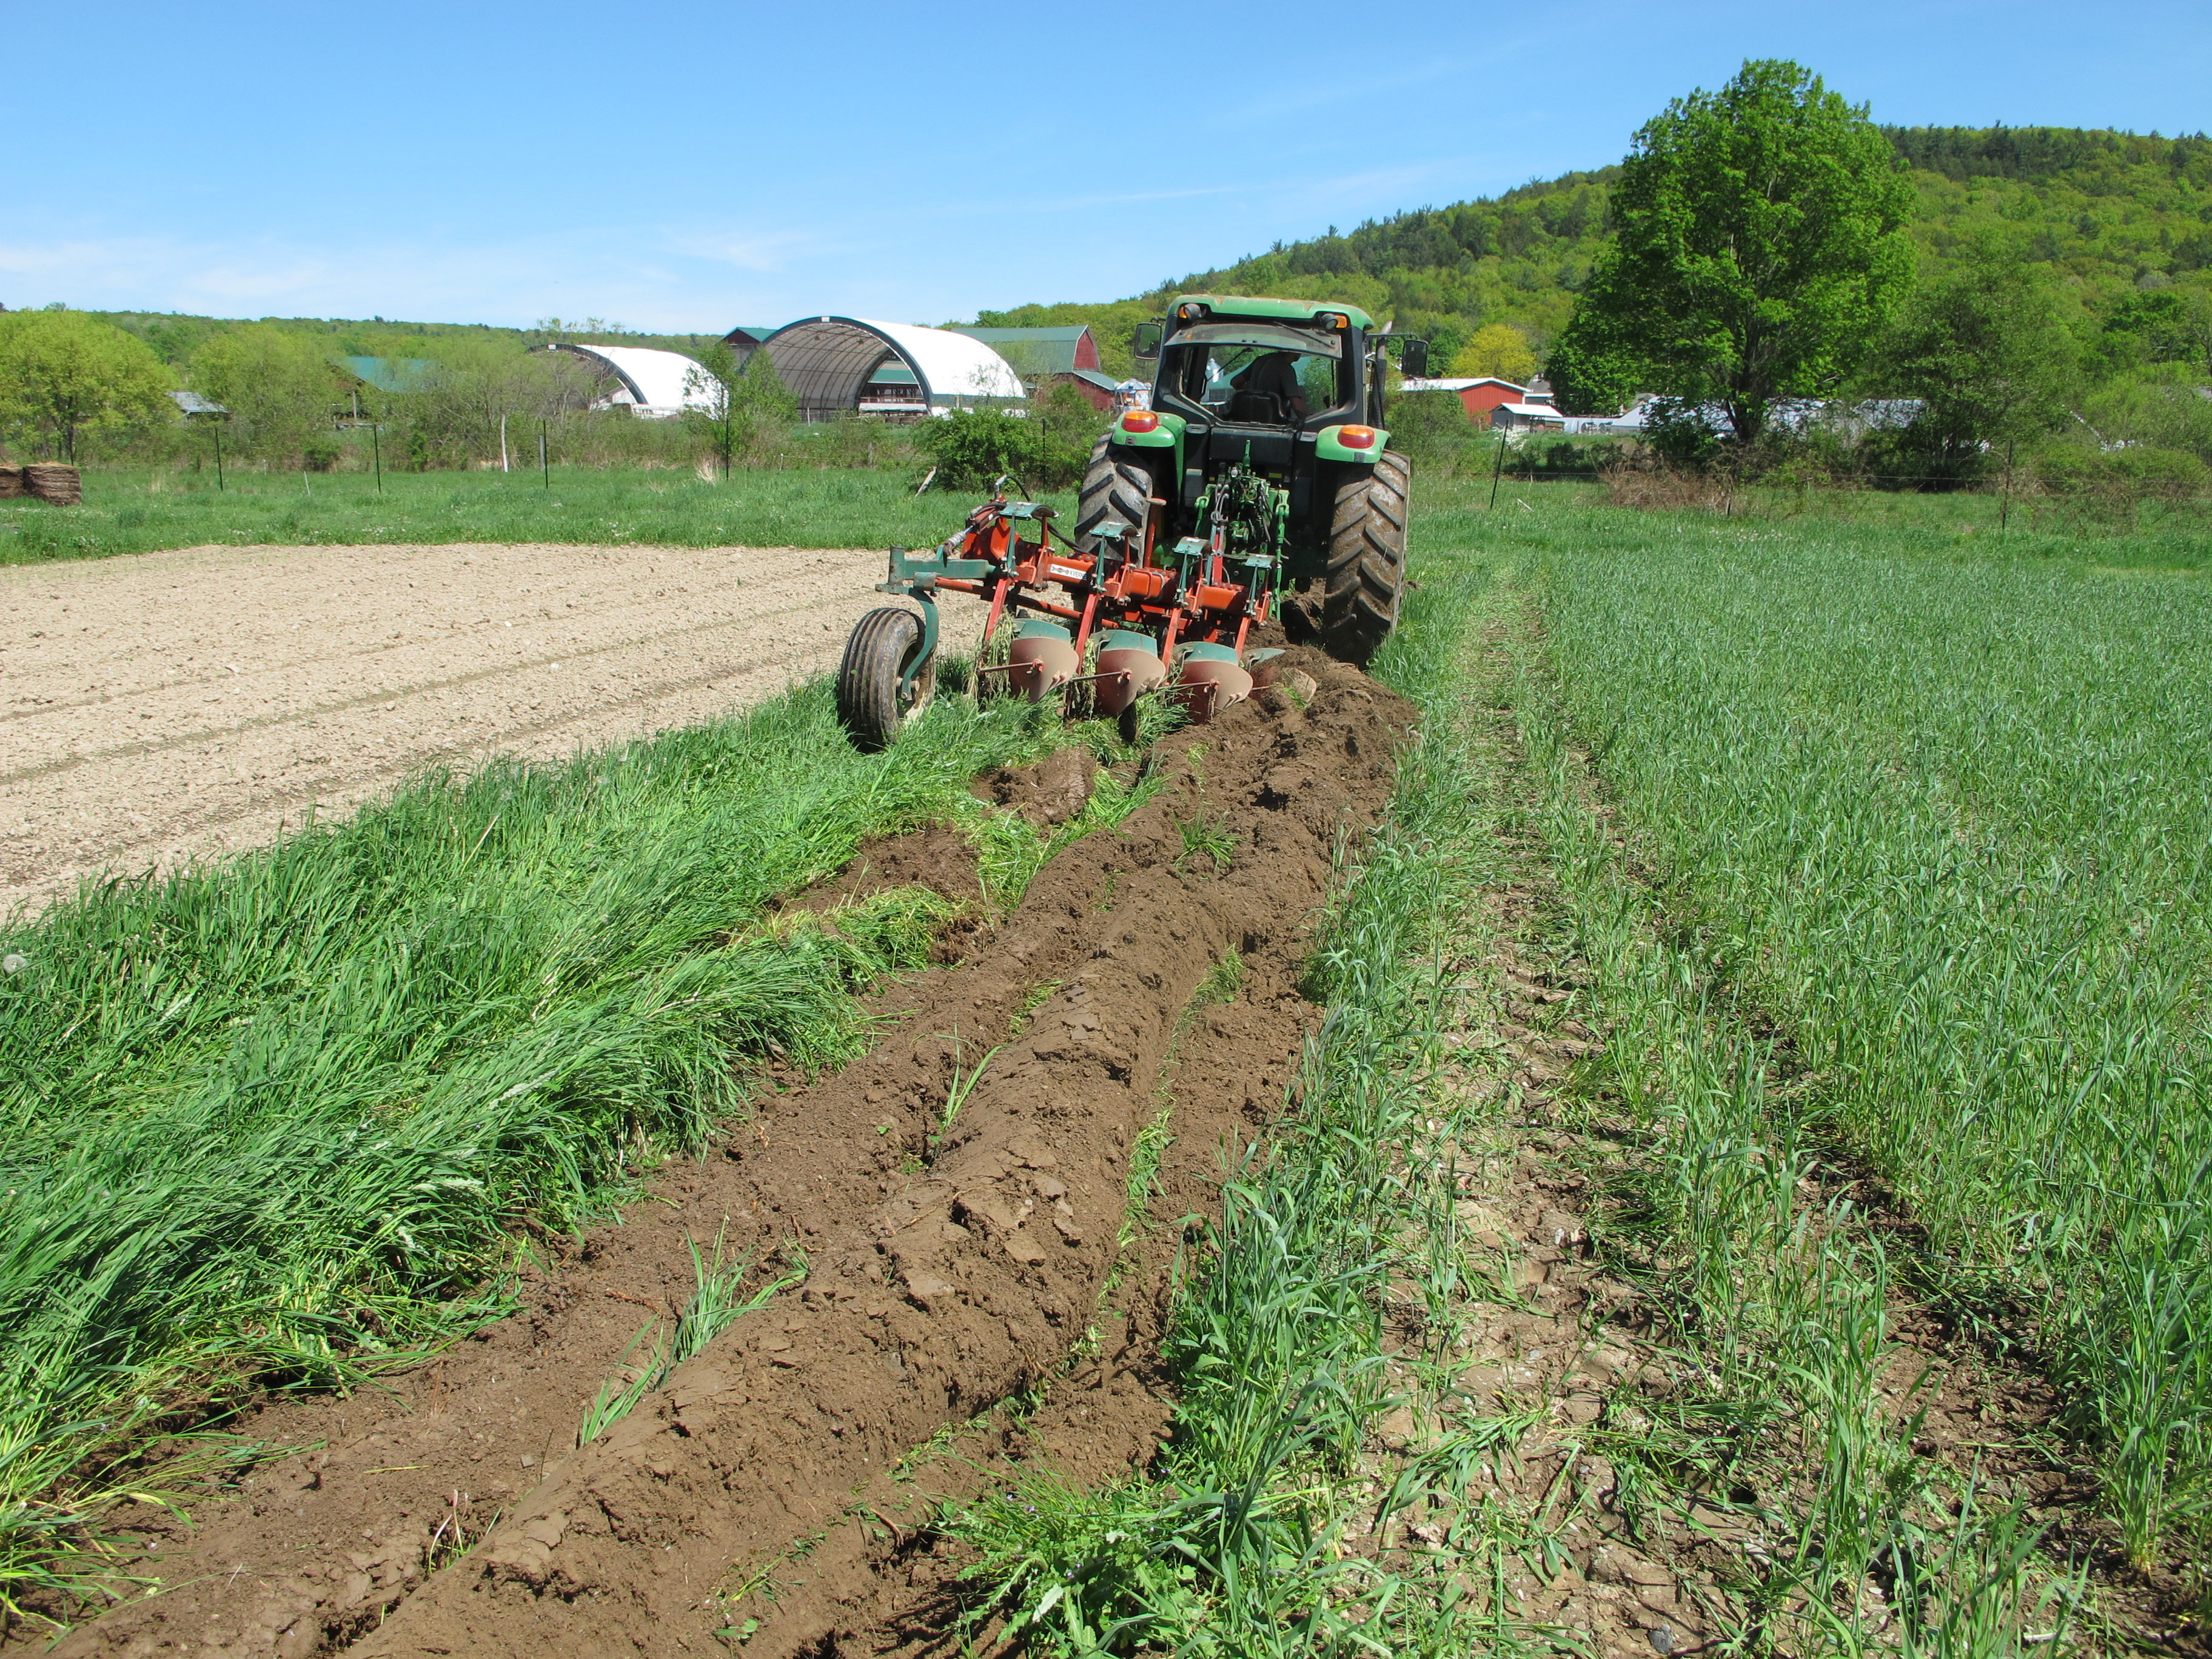 a tractor uses an implement to break up the grass and soil to prepare for planting